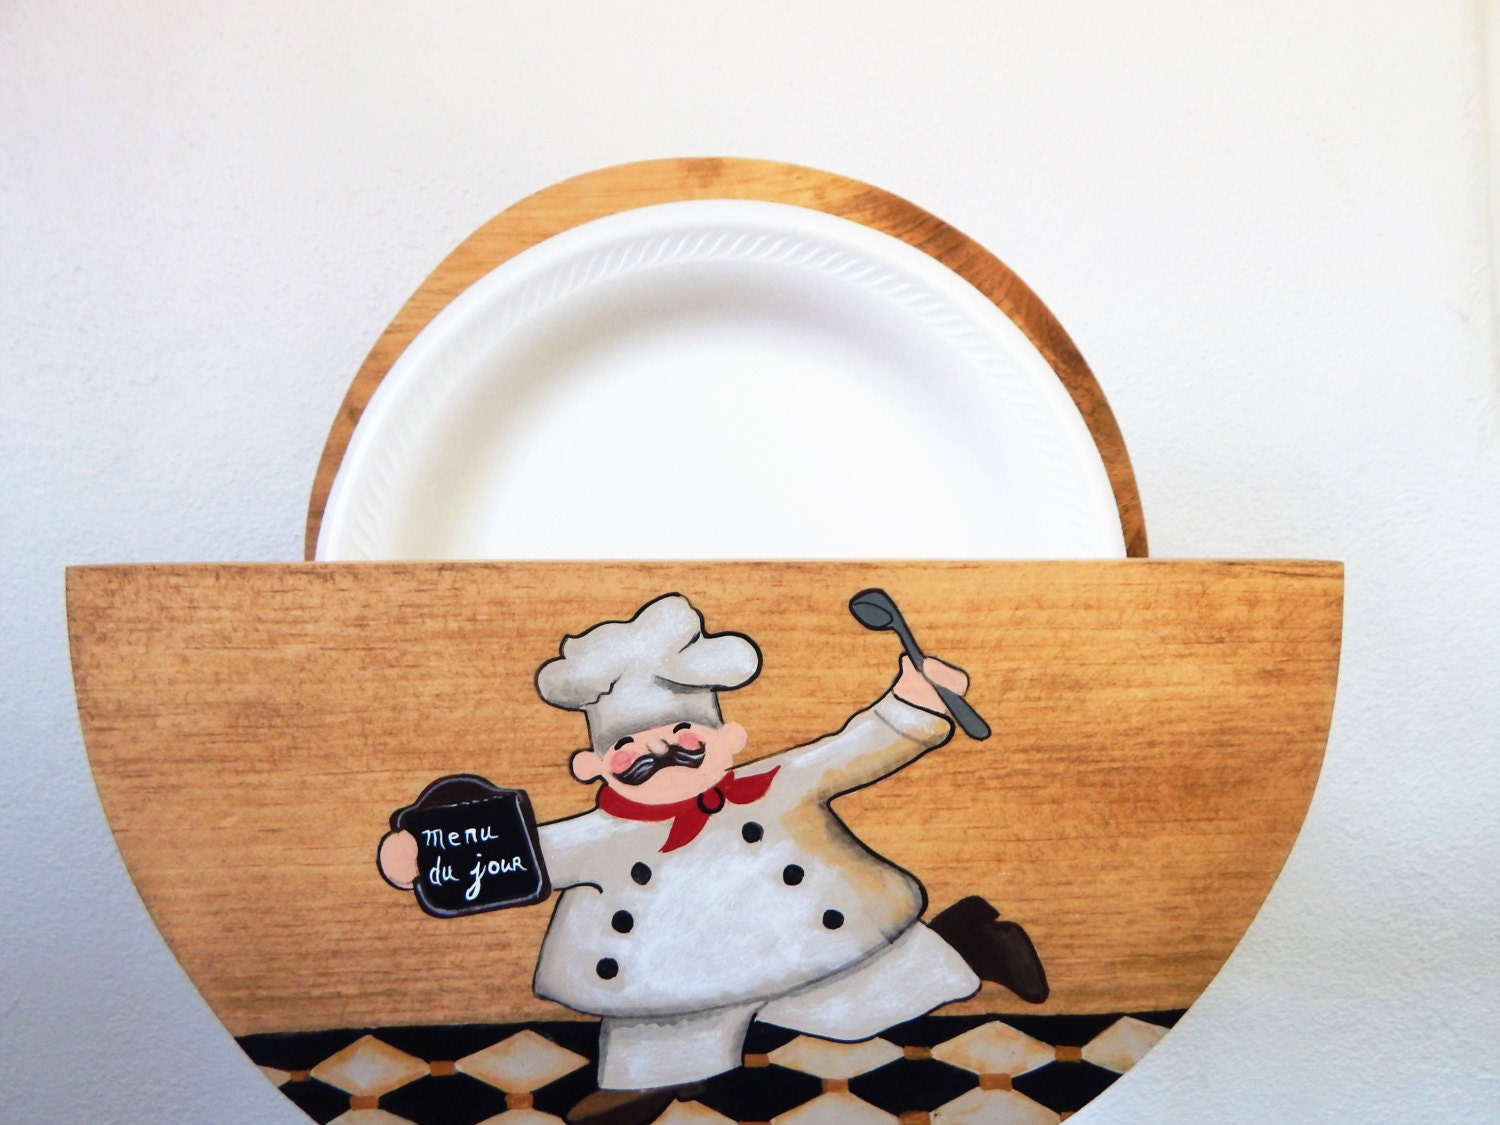 paper plate holder Set of 4 fox run plate holders are perfect for everyday use or your next backyard bbq, picnic, or beach trip microwave safe each plate holder measures approximately 9 in diameter and holds an 8 paper plate or regular plate.